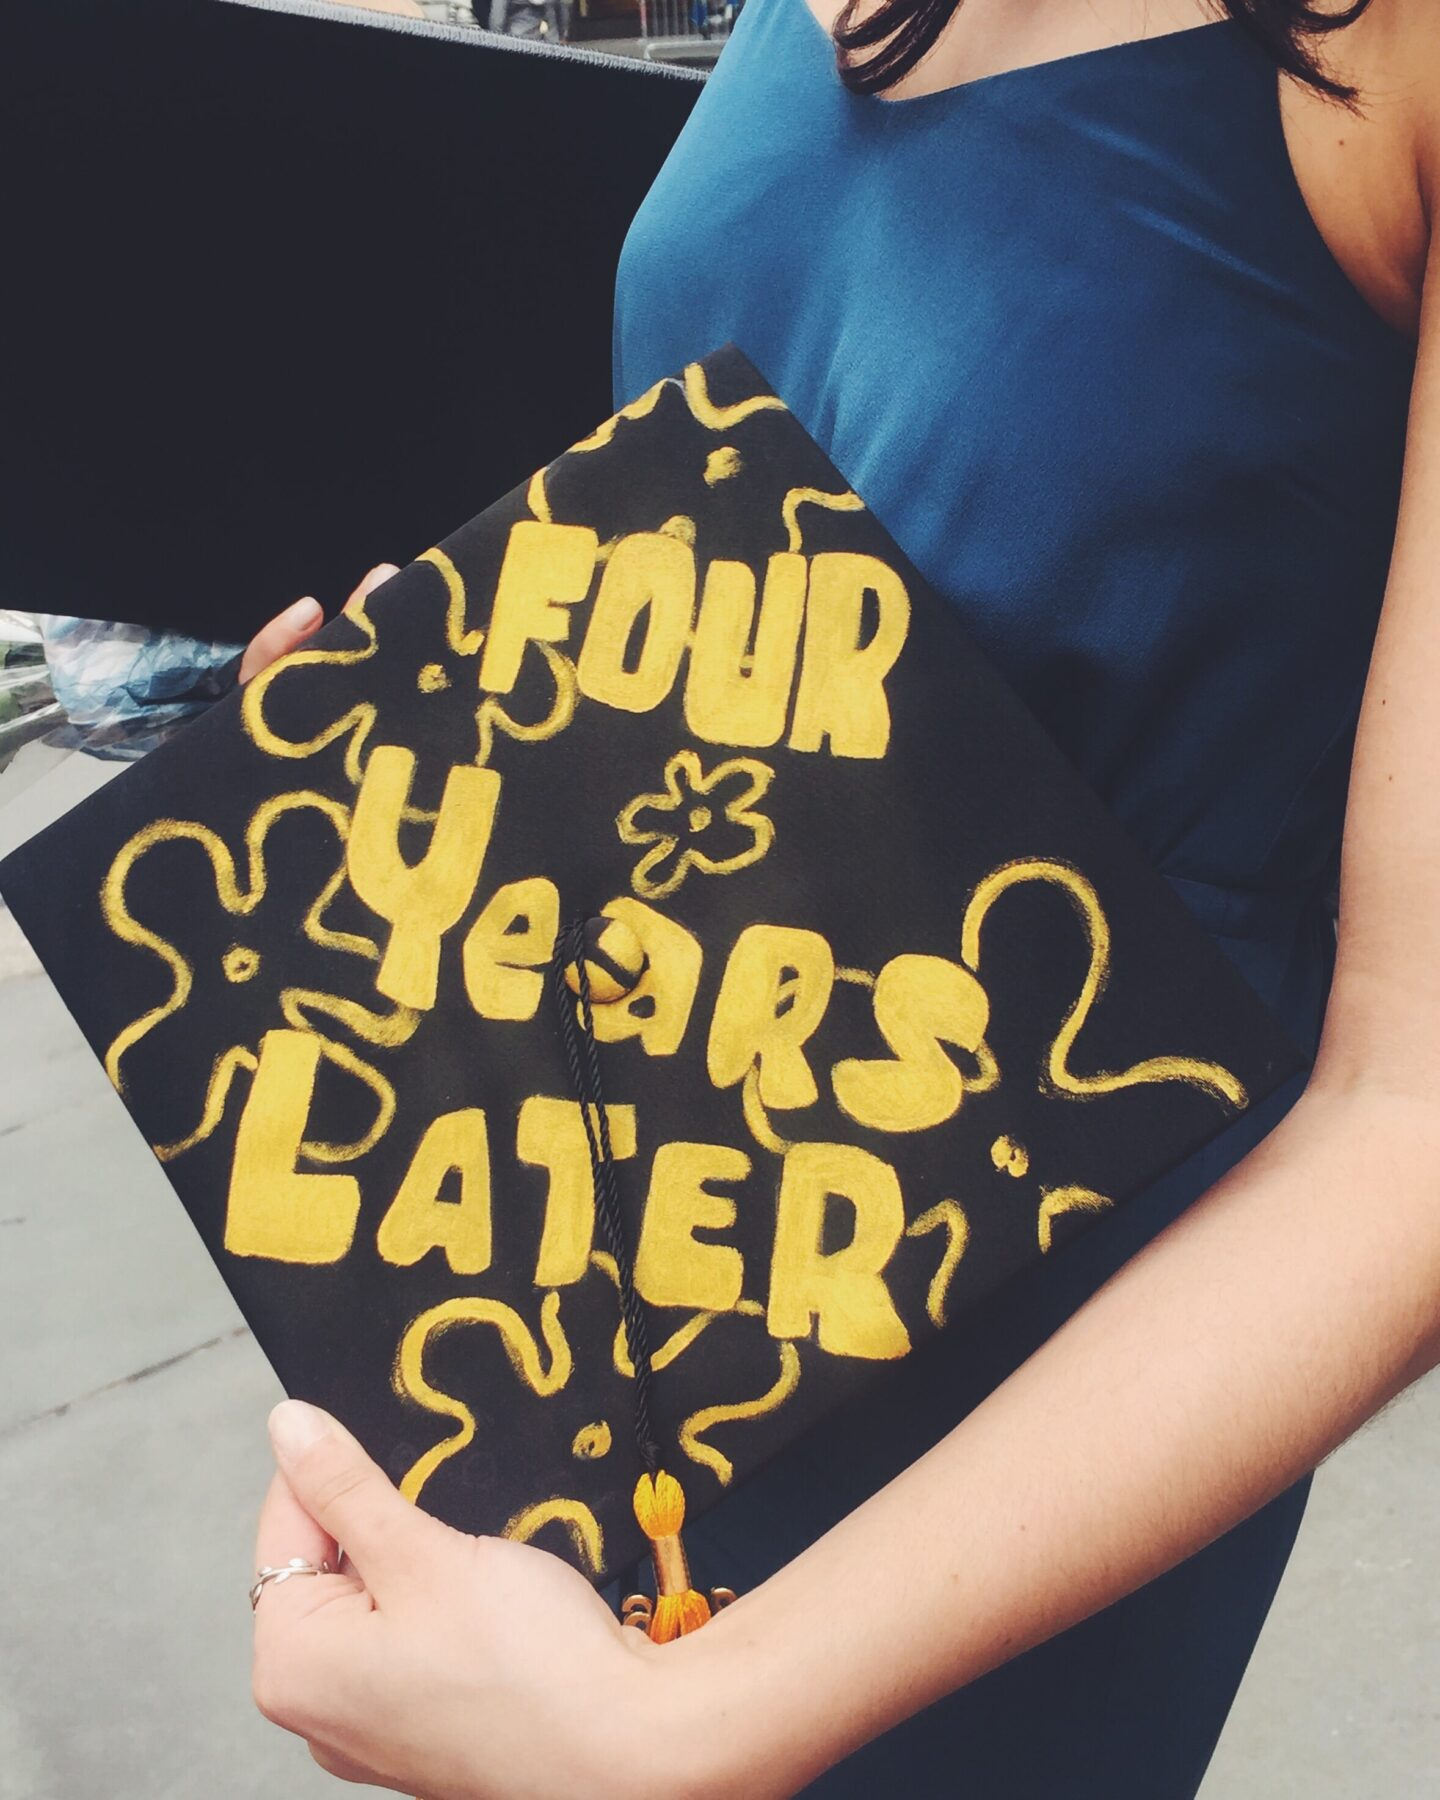 How To Decorate Graduation Cap Without Ruining It